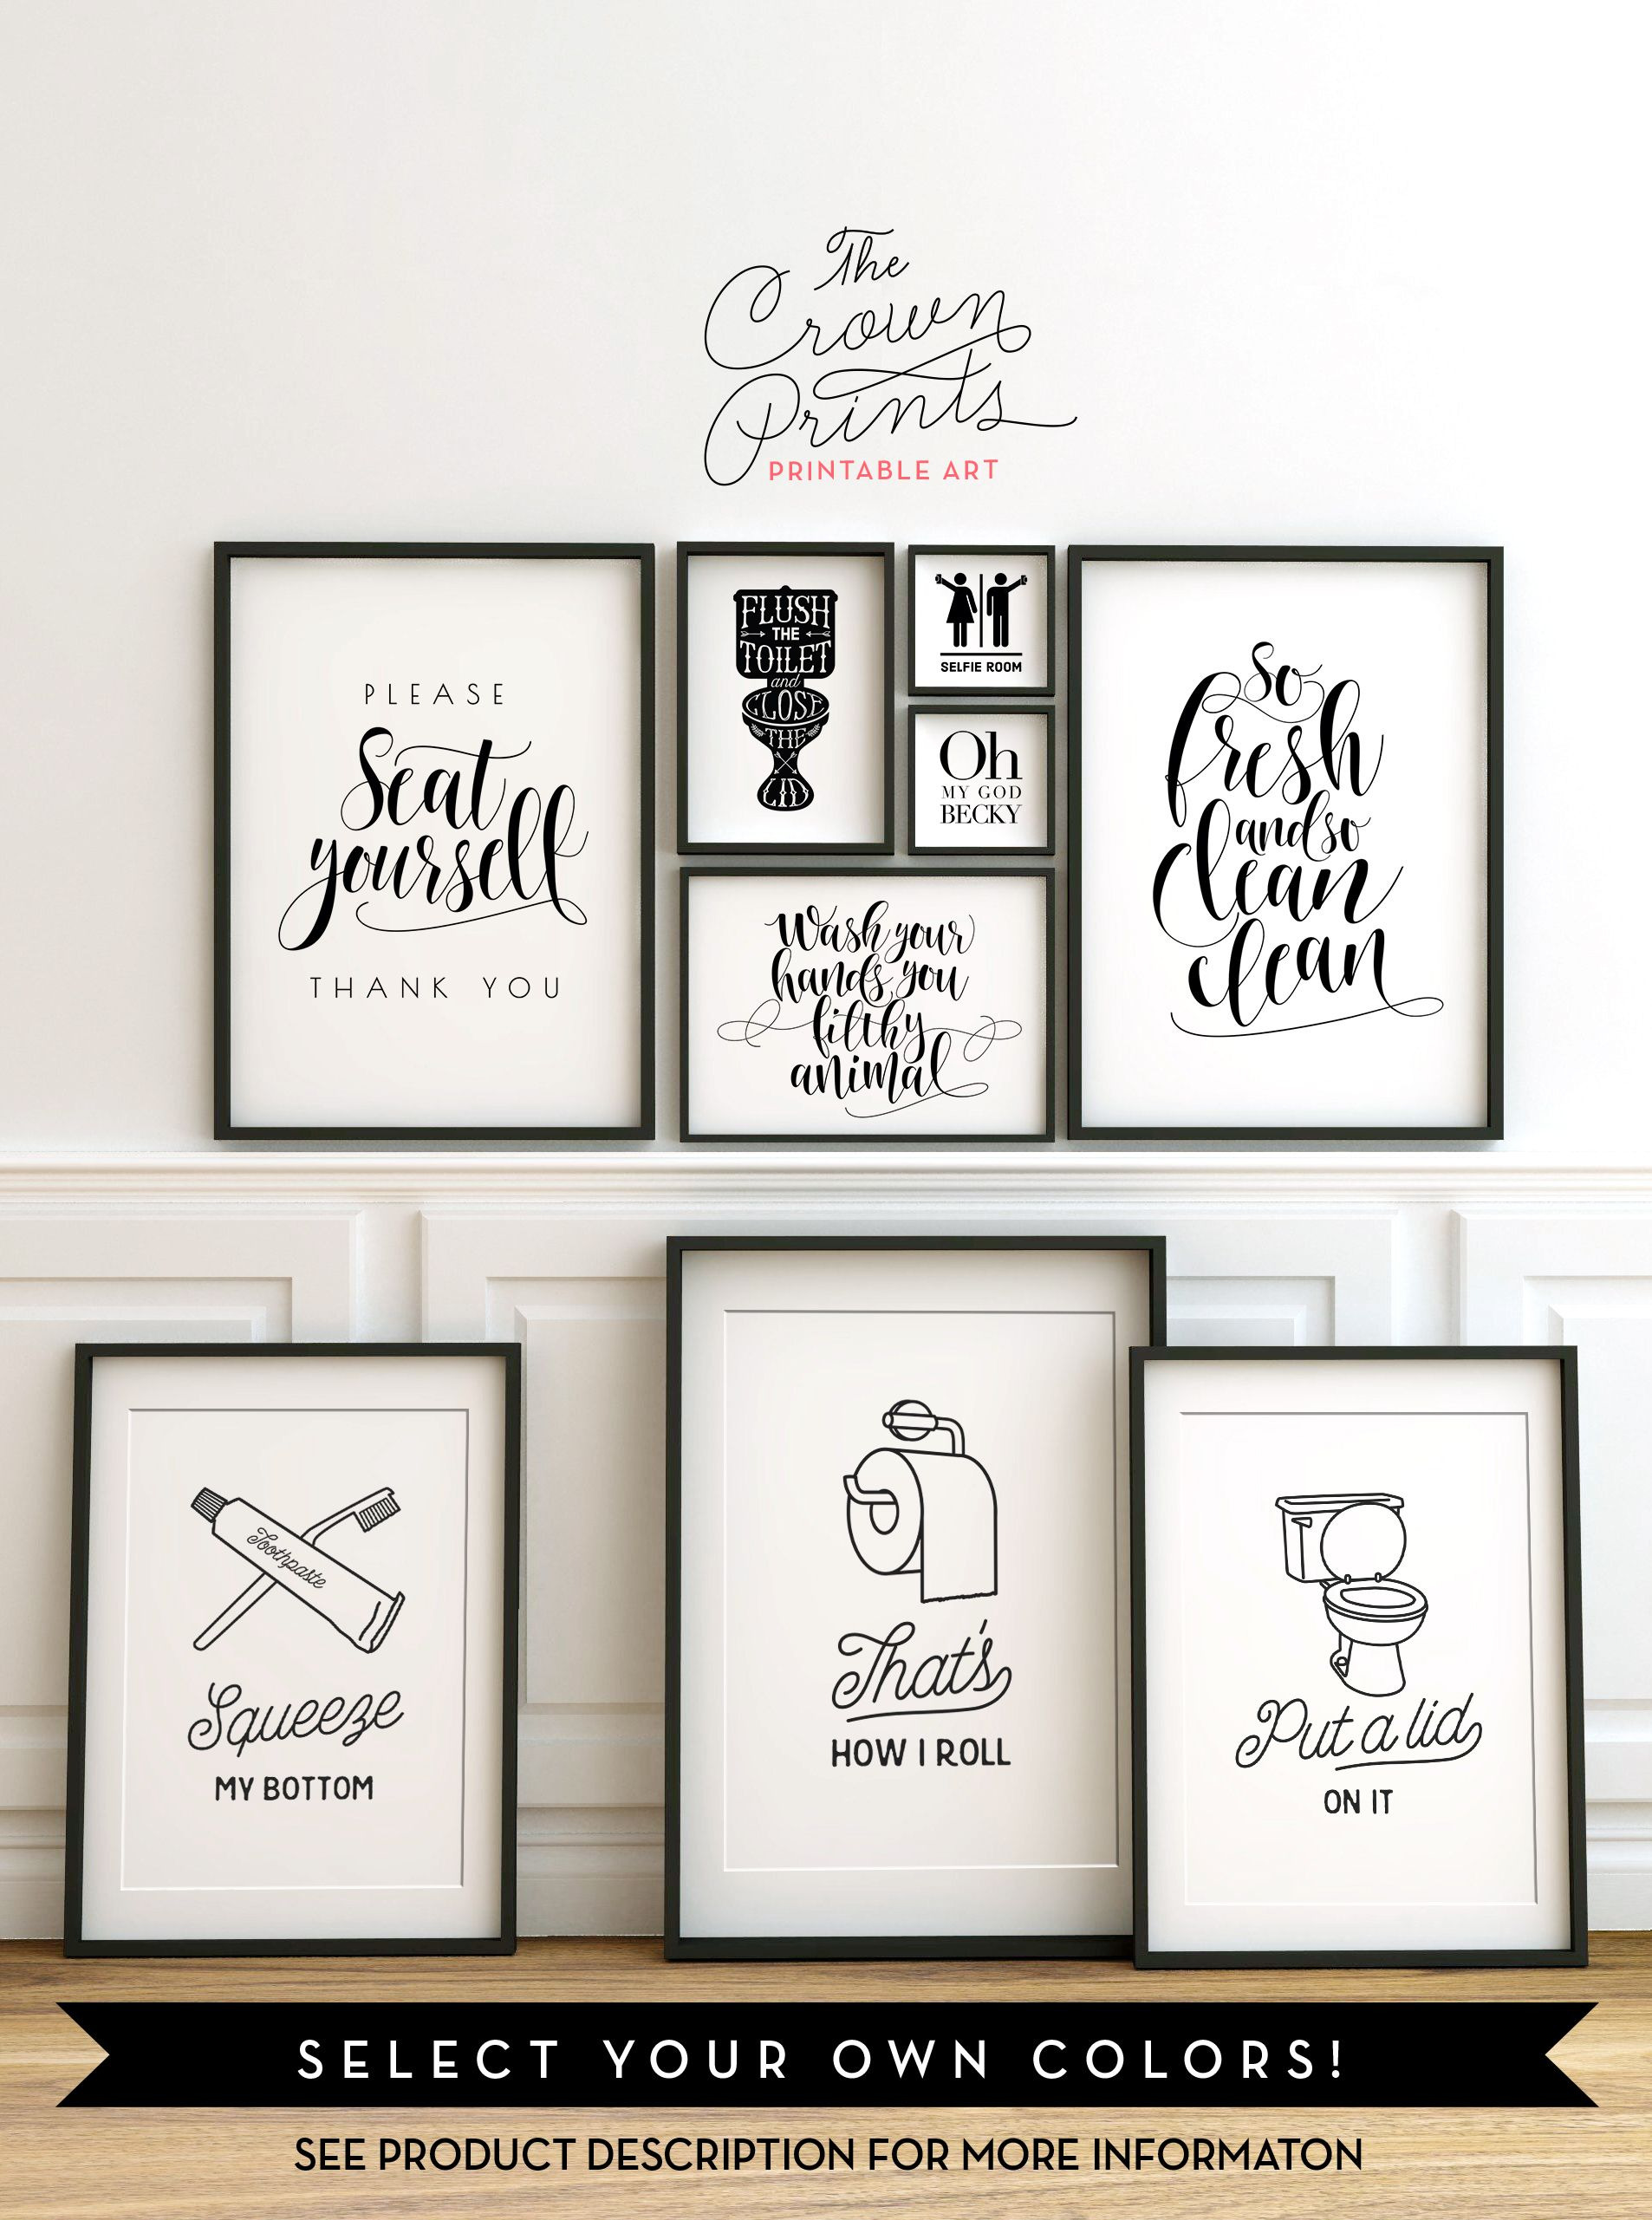 Pictures for Bathroom Wall Decor Awesome Printable Bathroom Wall Art From the Crown Prints On Etsy